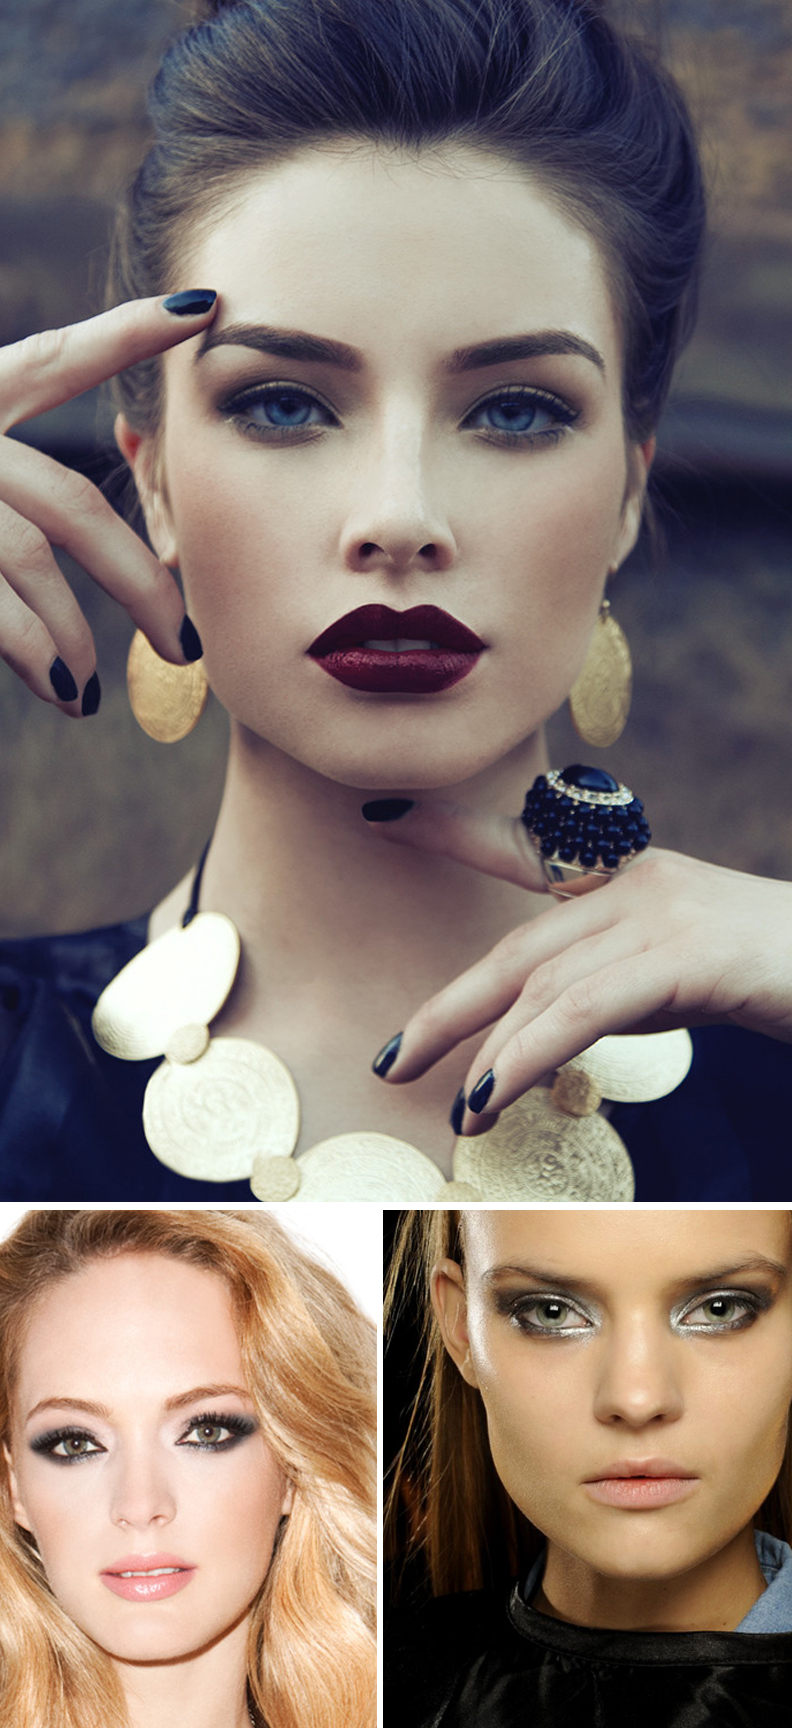 Top image: www.thewingedlady.com; Bottom left image: Smashbox.com; Bottom right image: www.thefashionfox.co.za